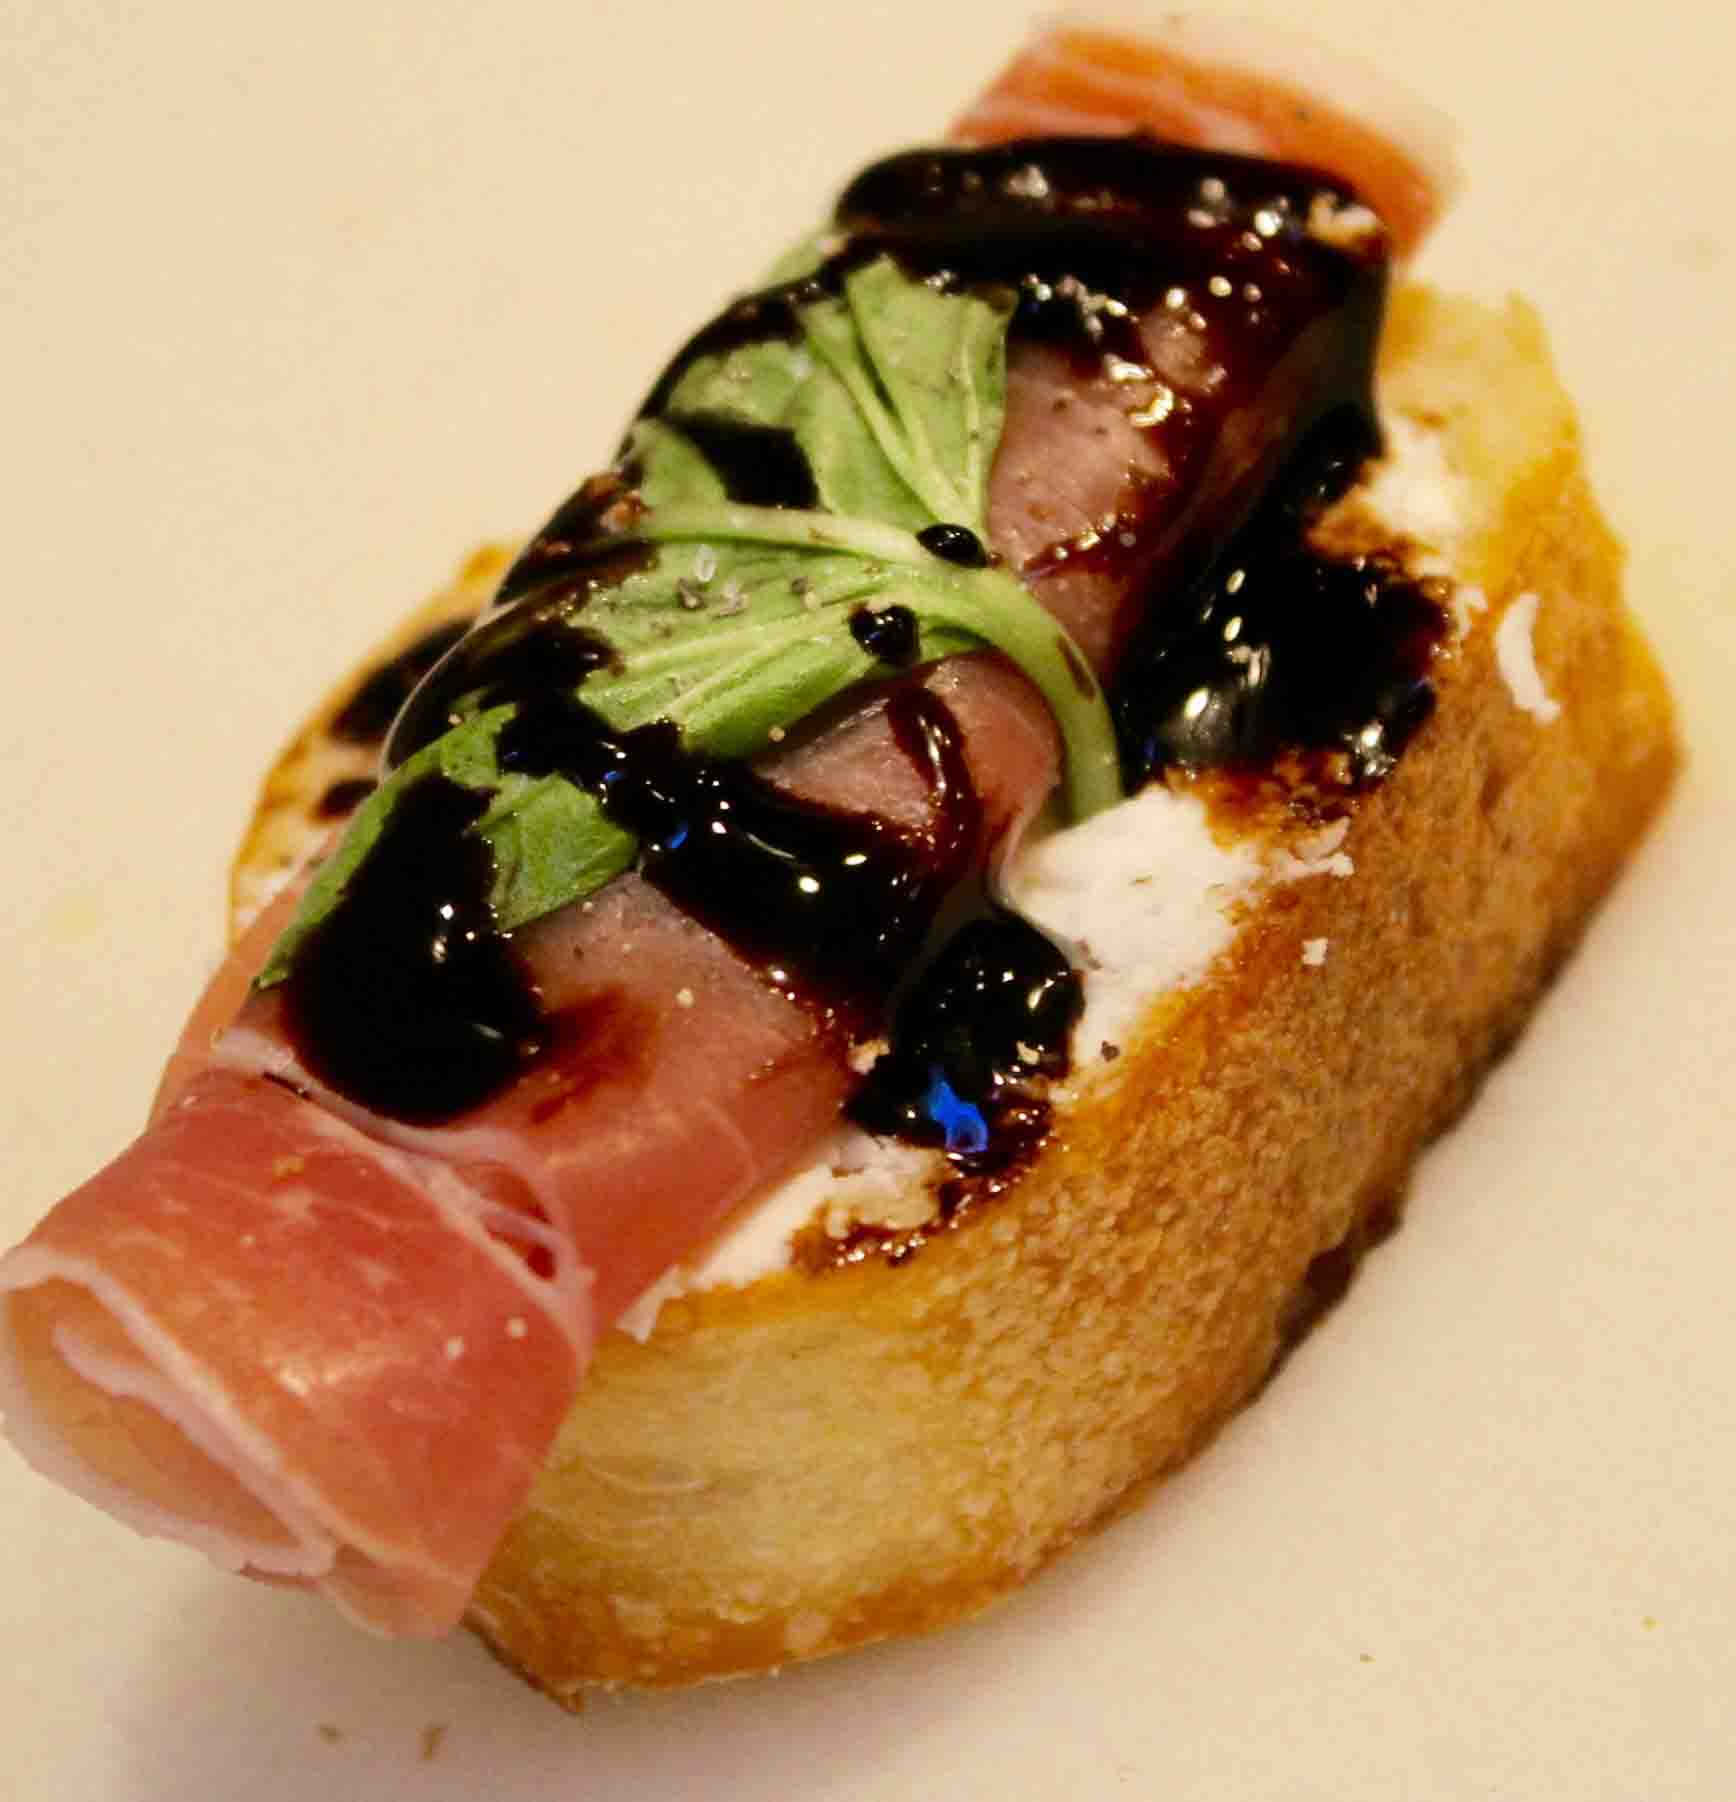 Tom's Prosciutto and Goat Cheese Crostini